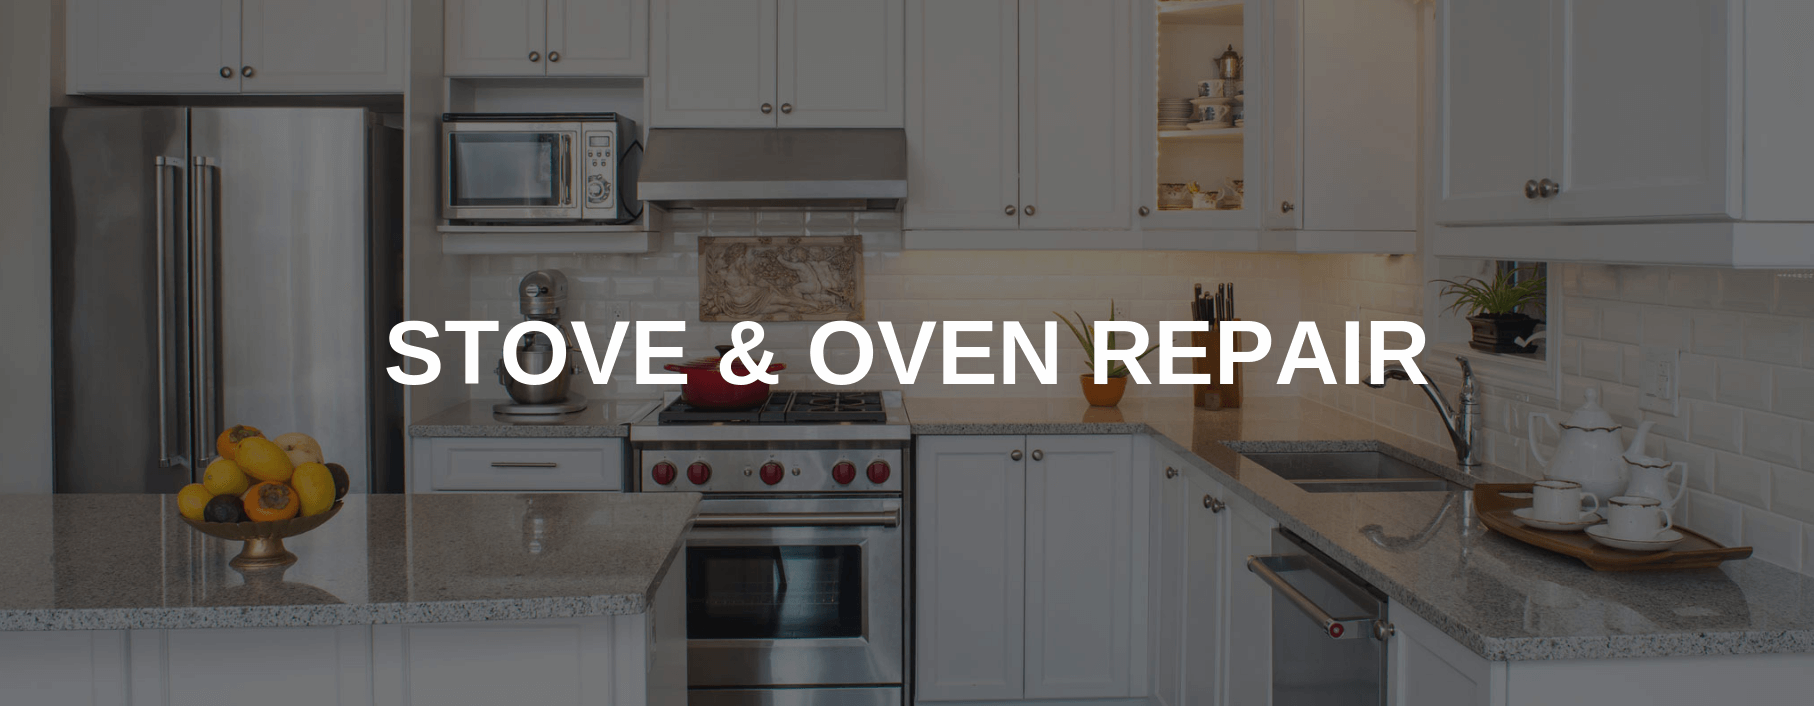 stove repair simi valley